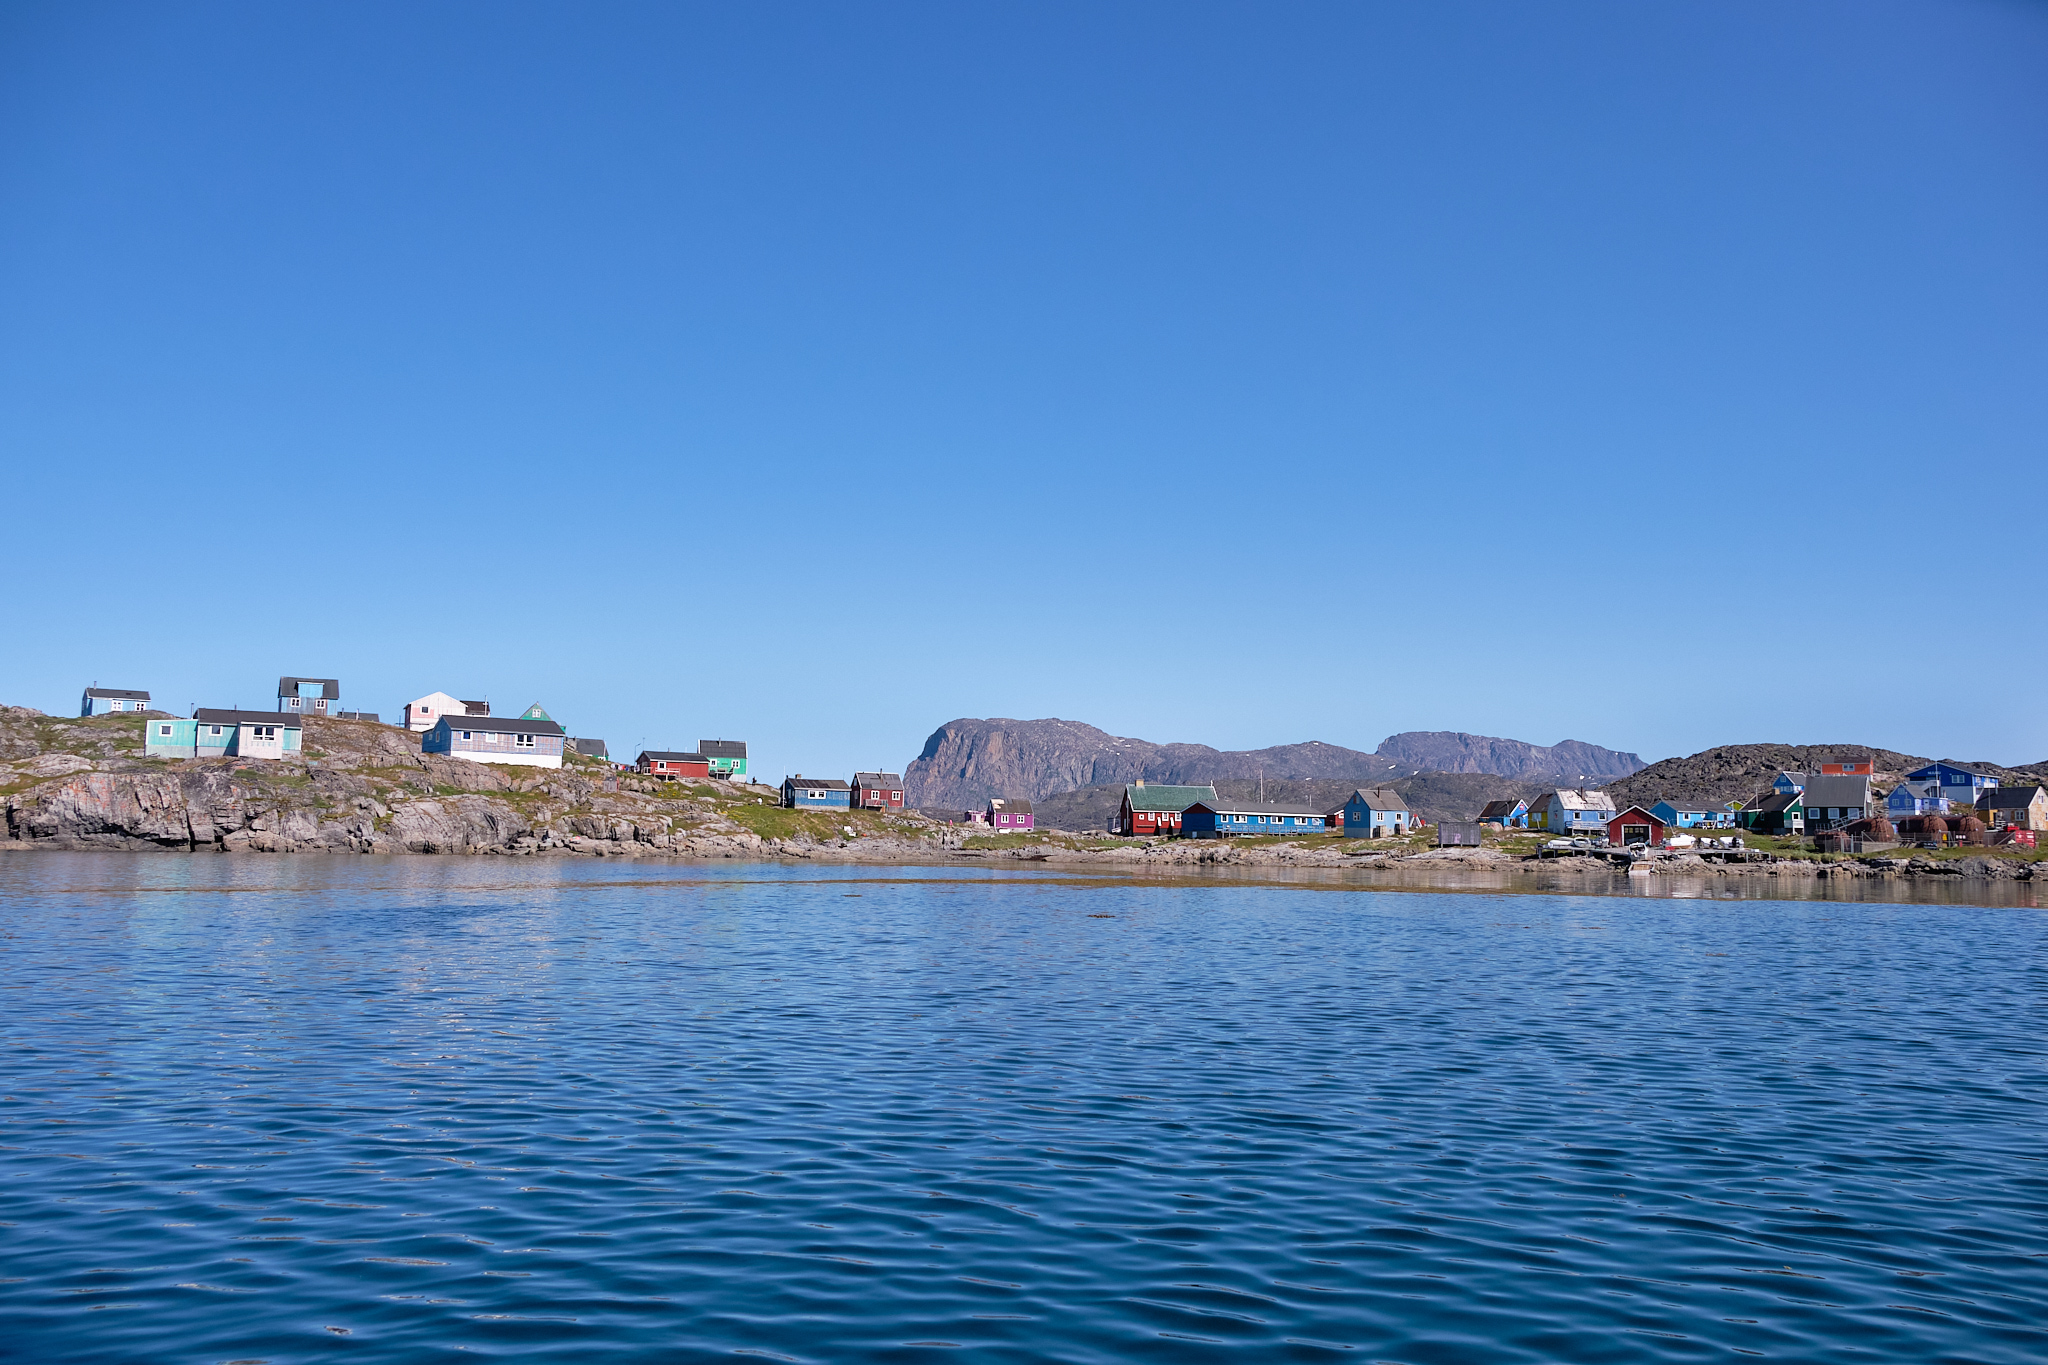 Small settlement of Itilleq south of Sisimiut - Greenland